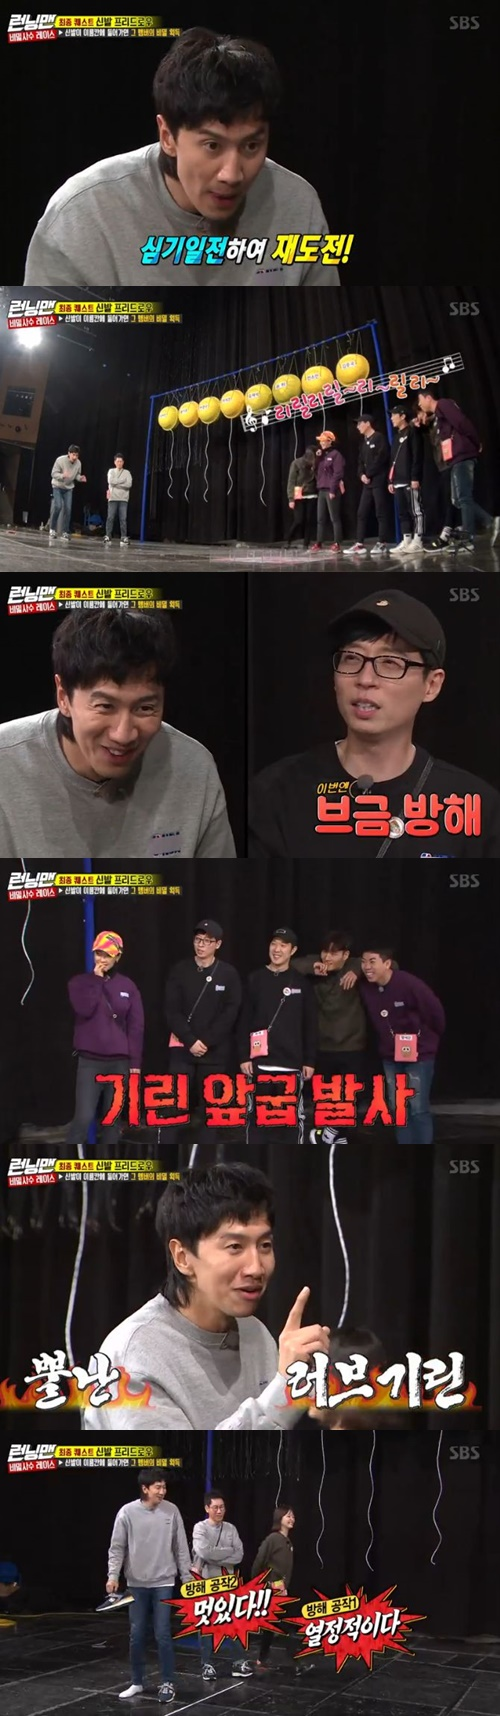 "<p> 'Running Man' Lee Kwang-soo with horns.</p><p>13 days afternoon broadcast SBS TV 'Running Man'in the secret warrior race were drawn.</p><p>This day, members make the shoes free if conducted. First, Lee Kwang-soo comes out, a small ""LoveGiraffe""and teased. Earlier, Lee Kwang-soo is the actor Lee Sun-bin and devotees had to admit.</p><p>Since the members are ""REALLY REALLY REALLY where the House should busy me and take care of your house before you should do and ill tell you""and to sing the song of a prank or struck.</p><p>After Lee Kwang-soo is the shoes, and cast it wearily horn prank show Laugh ego.</p>"